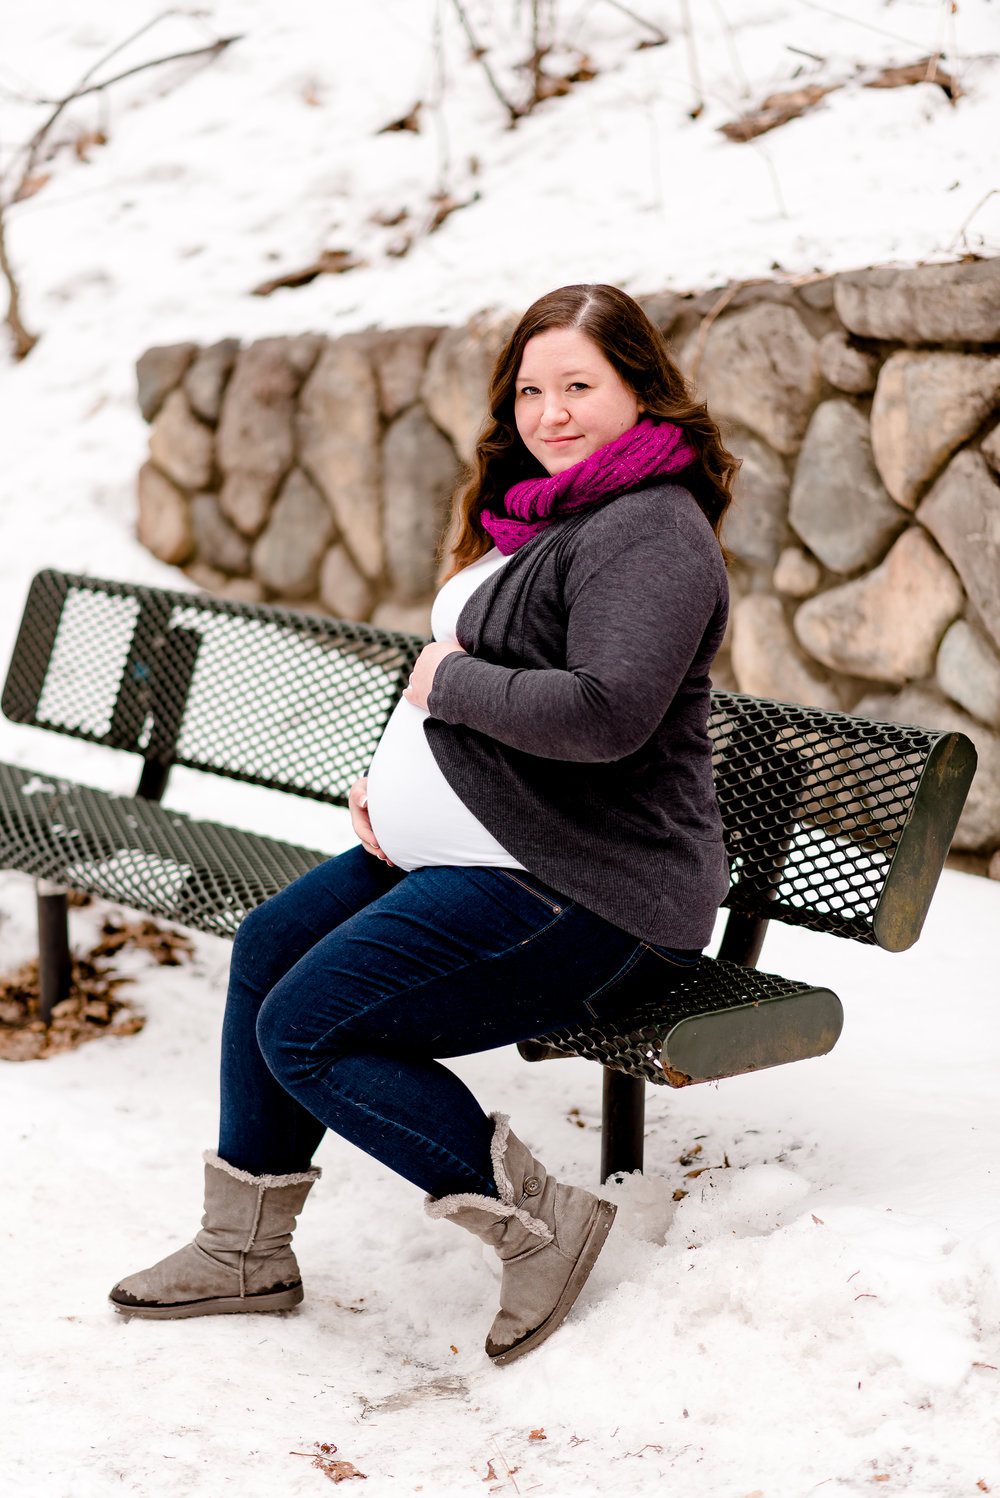 Pregnant Mama on Park Bench - Winter Maternity Photography Session in Twin Cities